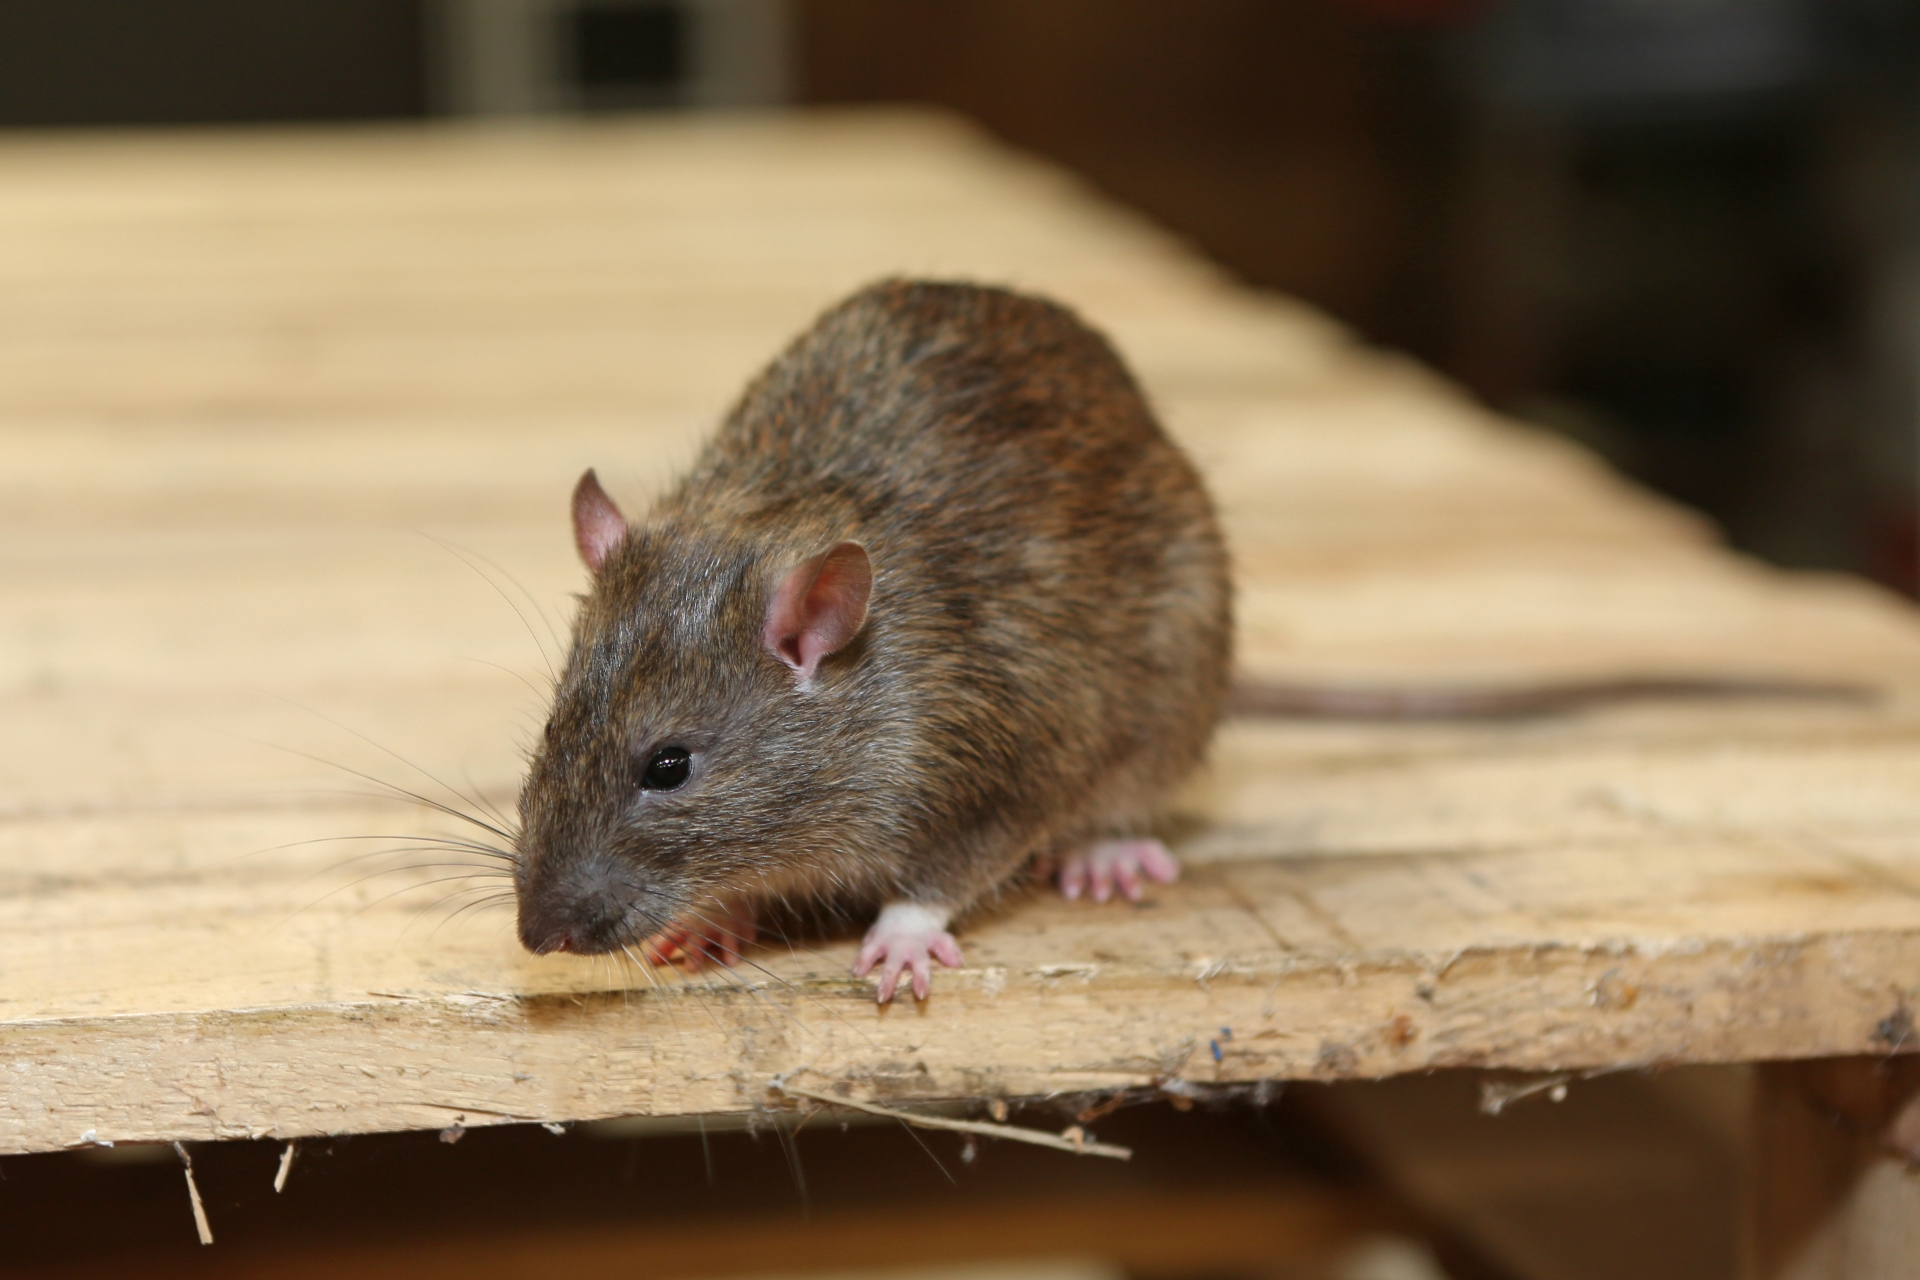 Rat Infestation, Pest Control in Kilburn, Queens Park, West Hampstead, NW6. Call Now 020 8166 9746